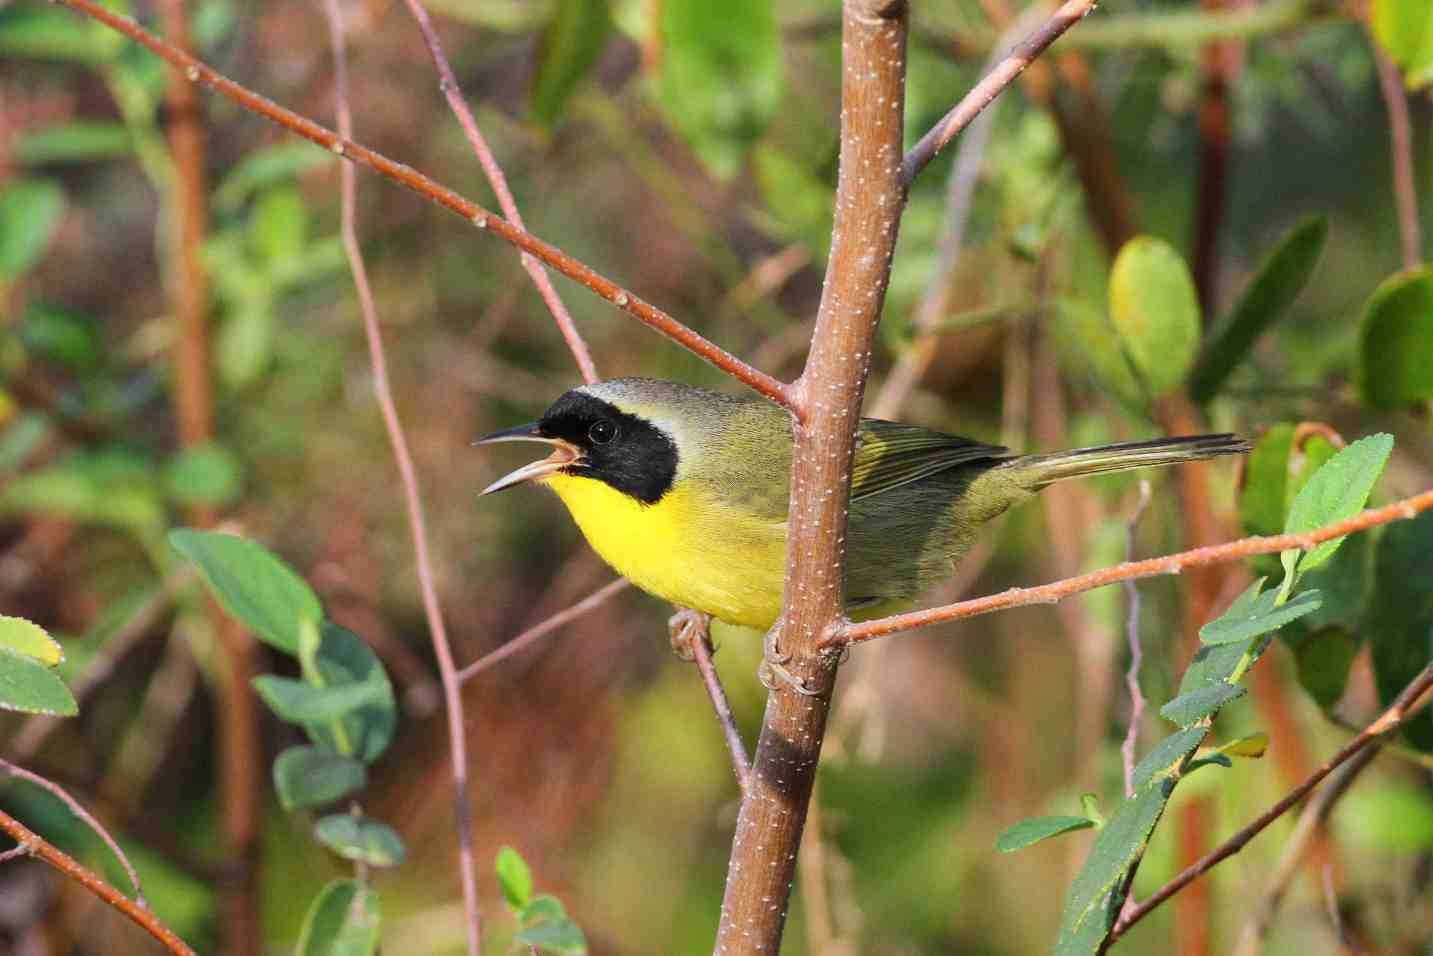 Abaco_Bahama Yellowthroat_Gerlinde Taurer copy